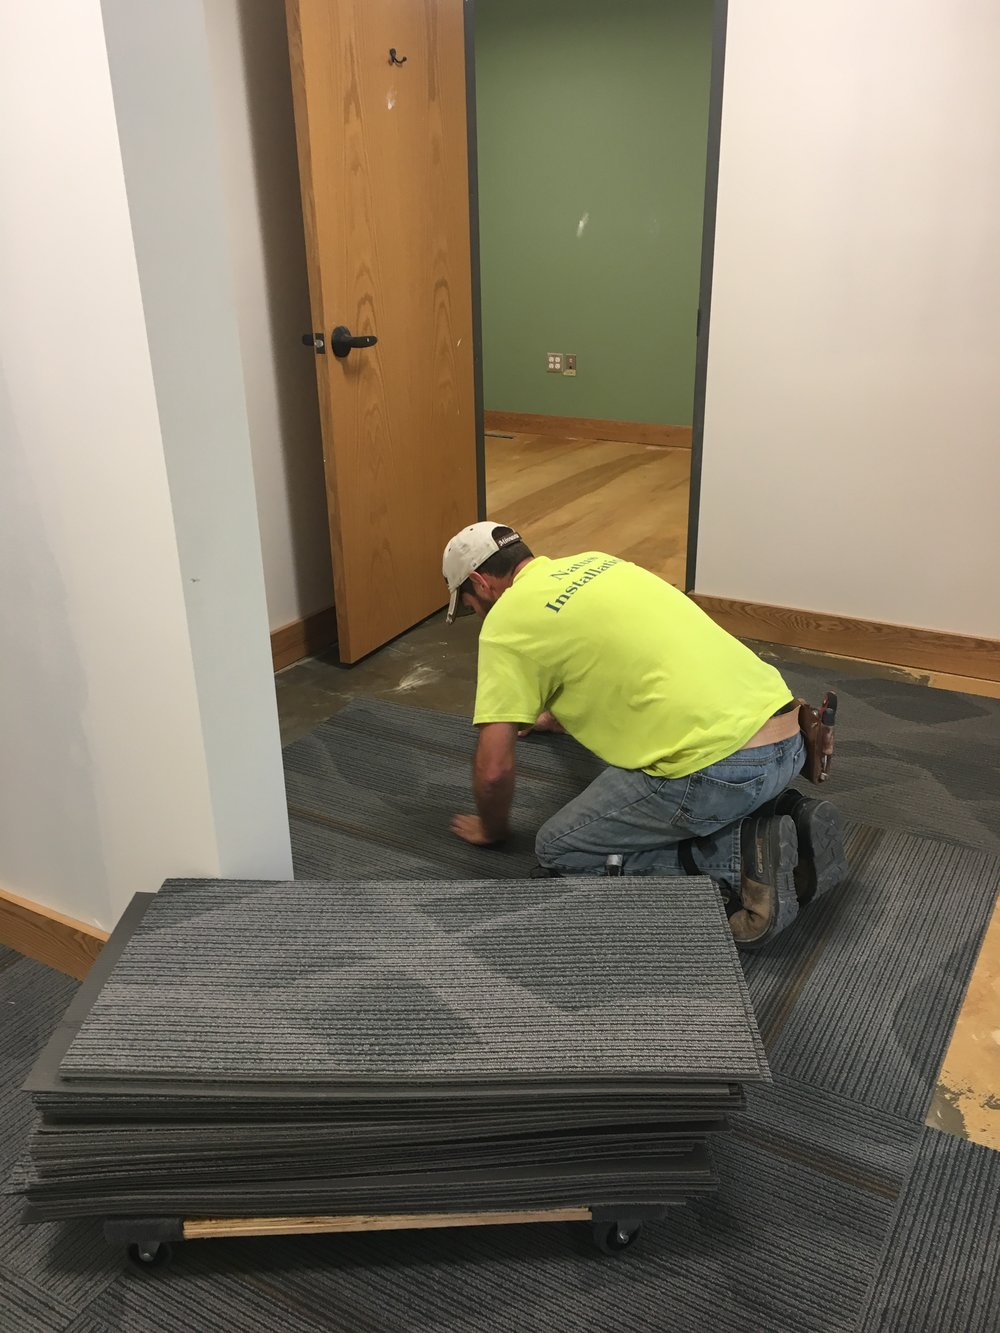 Paint, baseboards, and carpet are the latest signs of progress in the office suite.